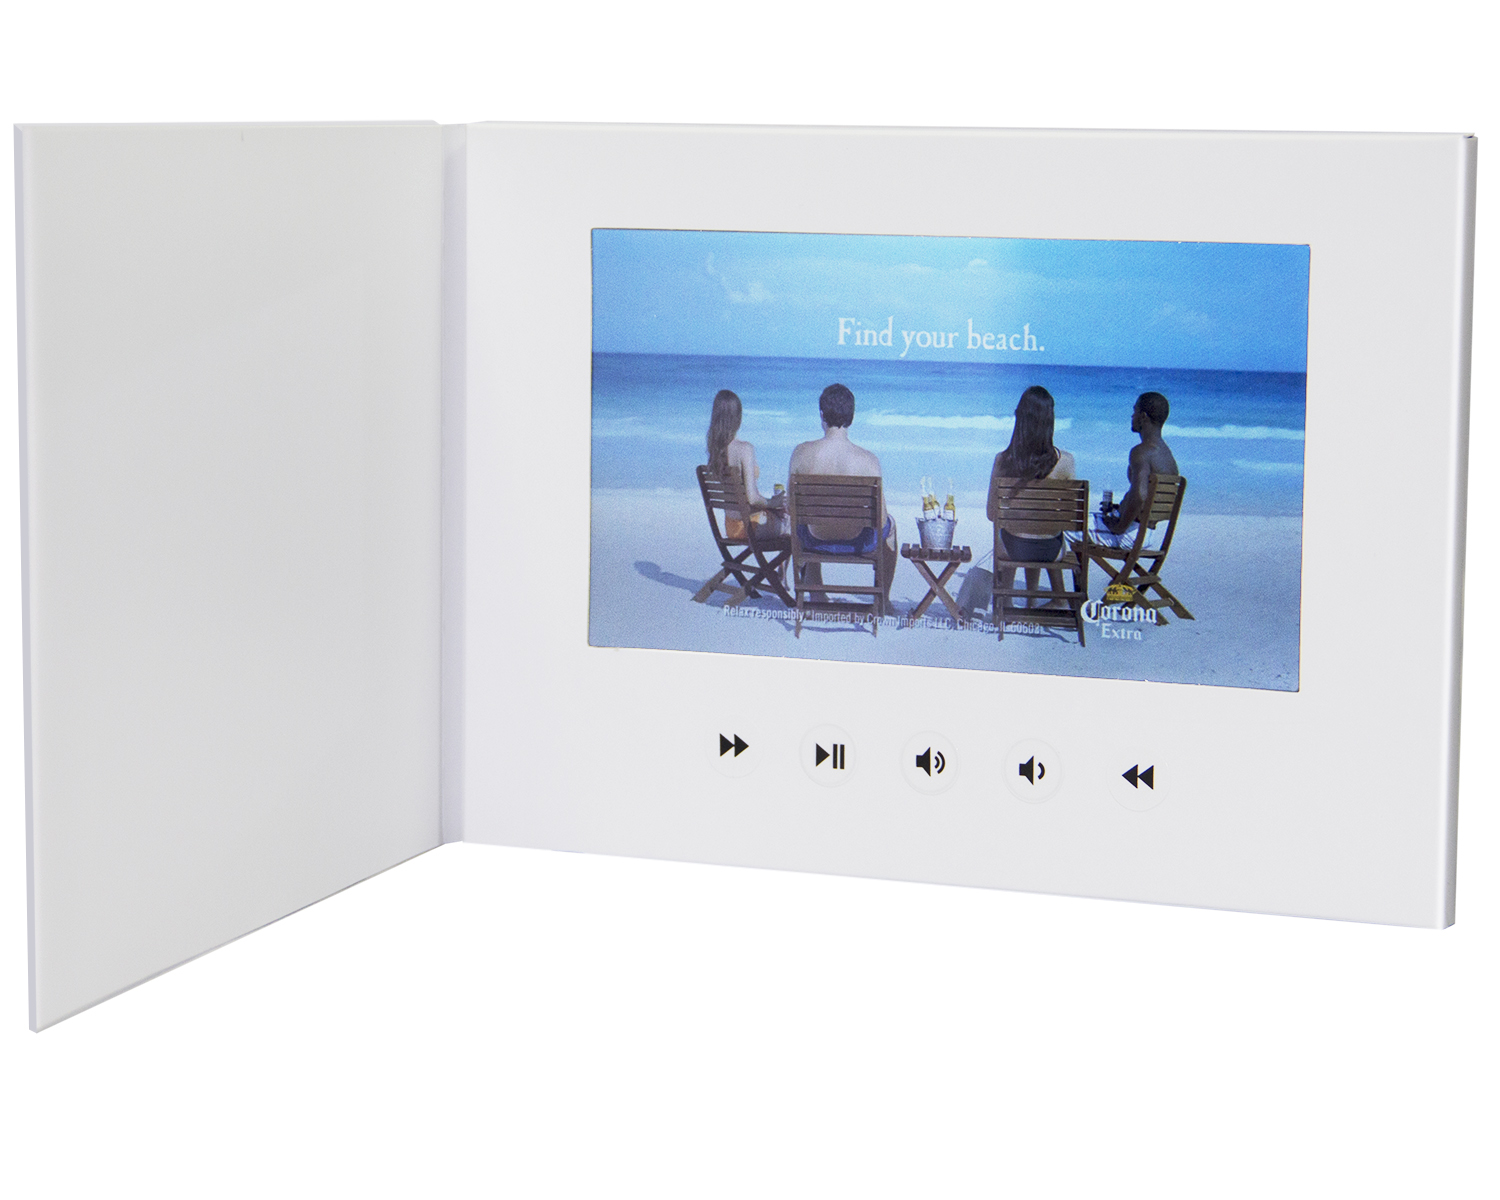 LuguLake 7″ Video Greeting Card,Video Brochure for Christmas, Anniversary, Marketing Include 2G Memory and Rechargeable Battery LCD Screen Digital Photo Frame